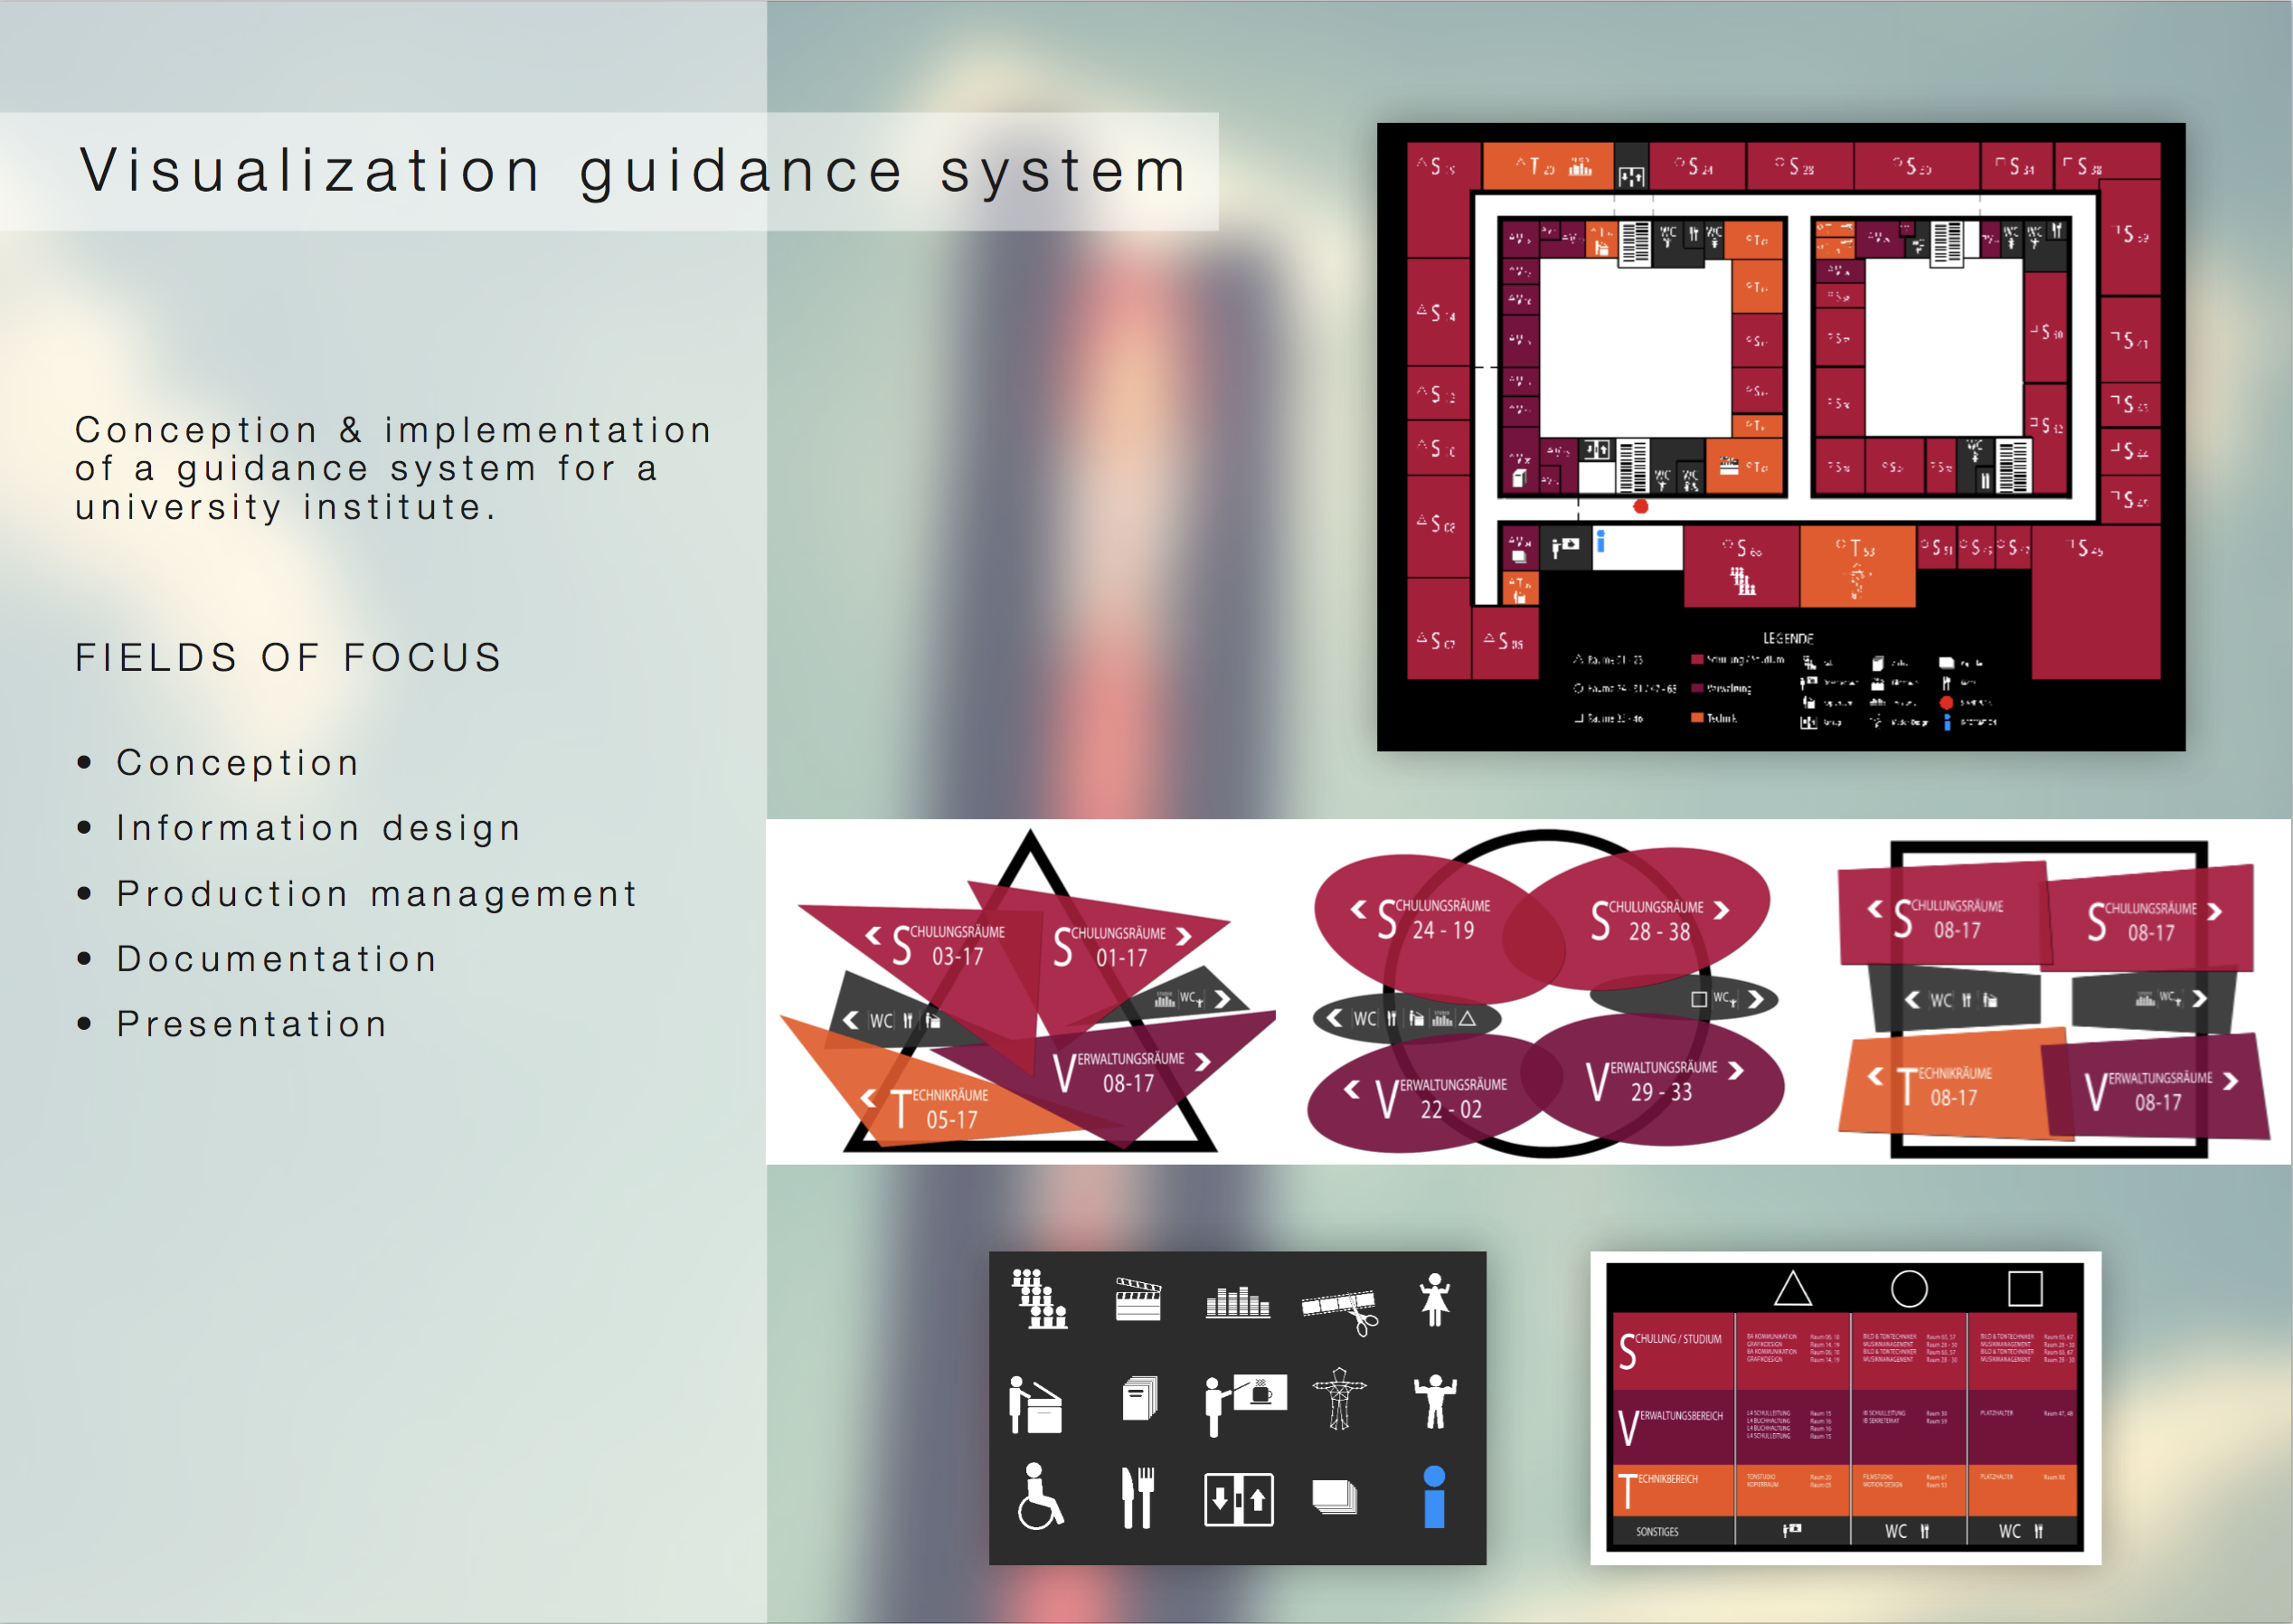 guidance_system_conception_christoph_bartetzko